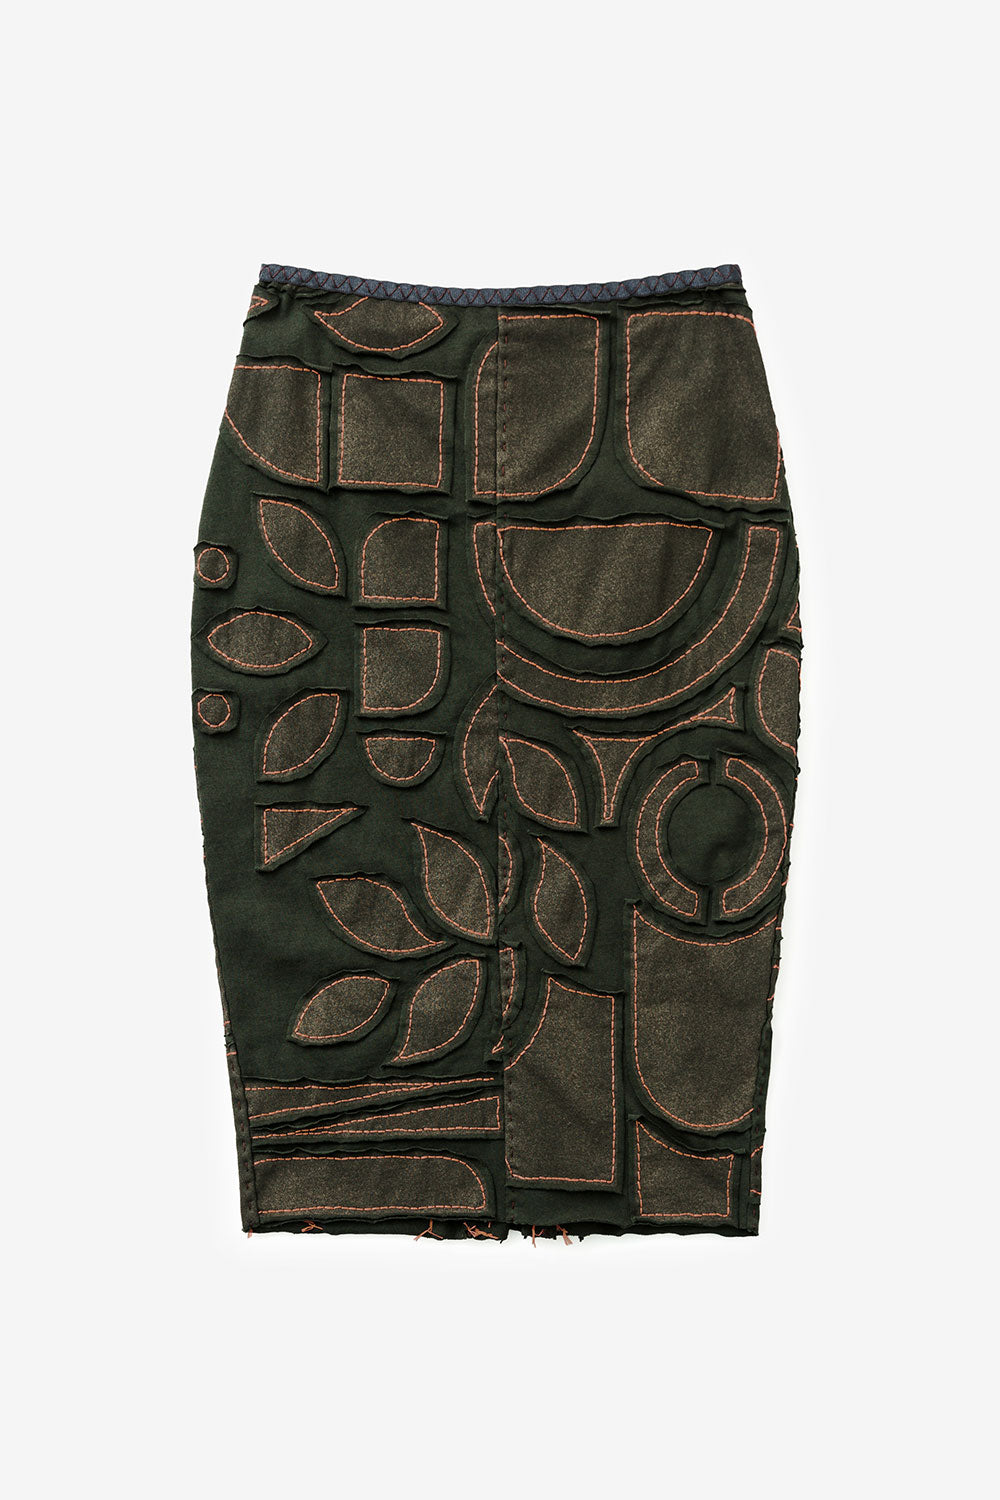 The School of Making Pencil Skirt Pattern Hand-Sewn Fitted Skirt with Embroidery Floss Maker Project